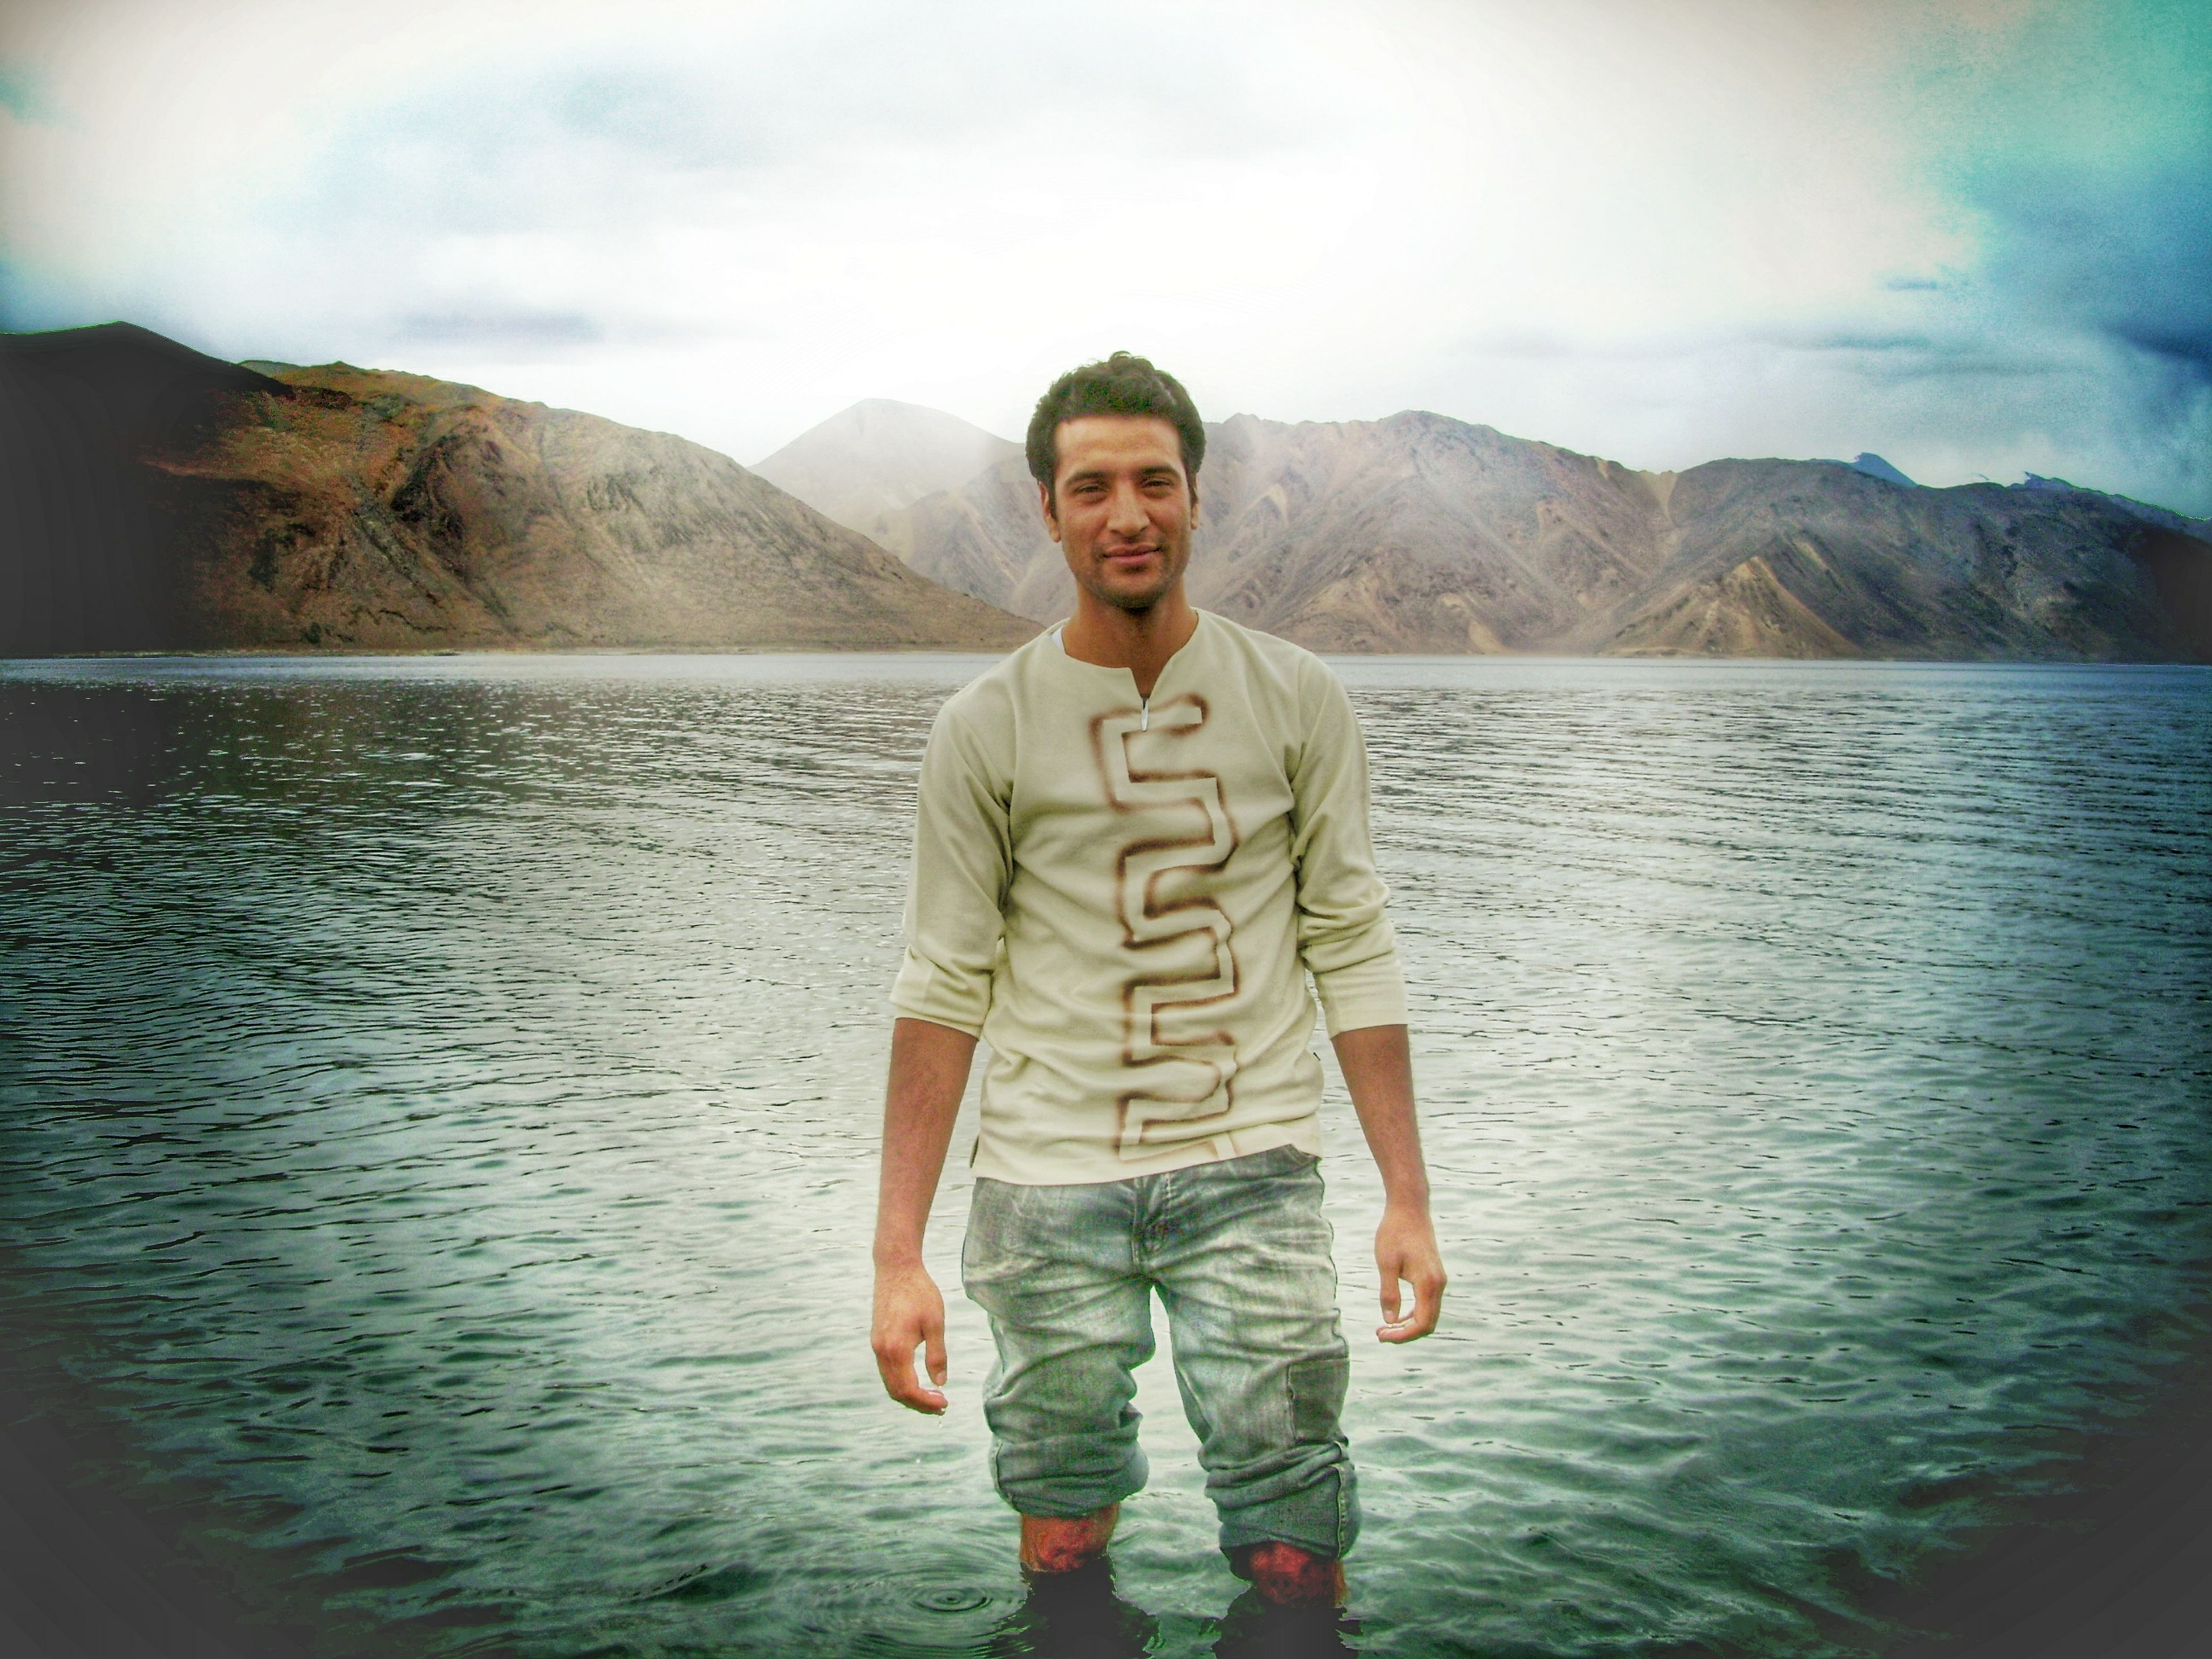 water, lifestyles, casual clothing, mountain, standing, person, young adult, leisure activity, looking at camera, three quarter length, sky, portrait, front view, young men, lake, full length, tranquility, scenics